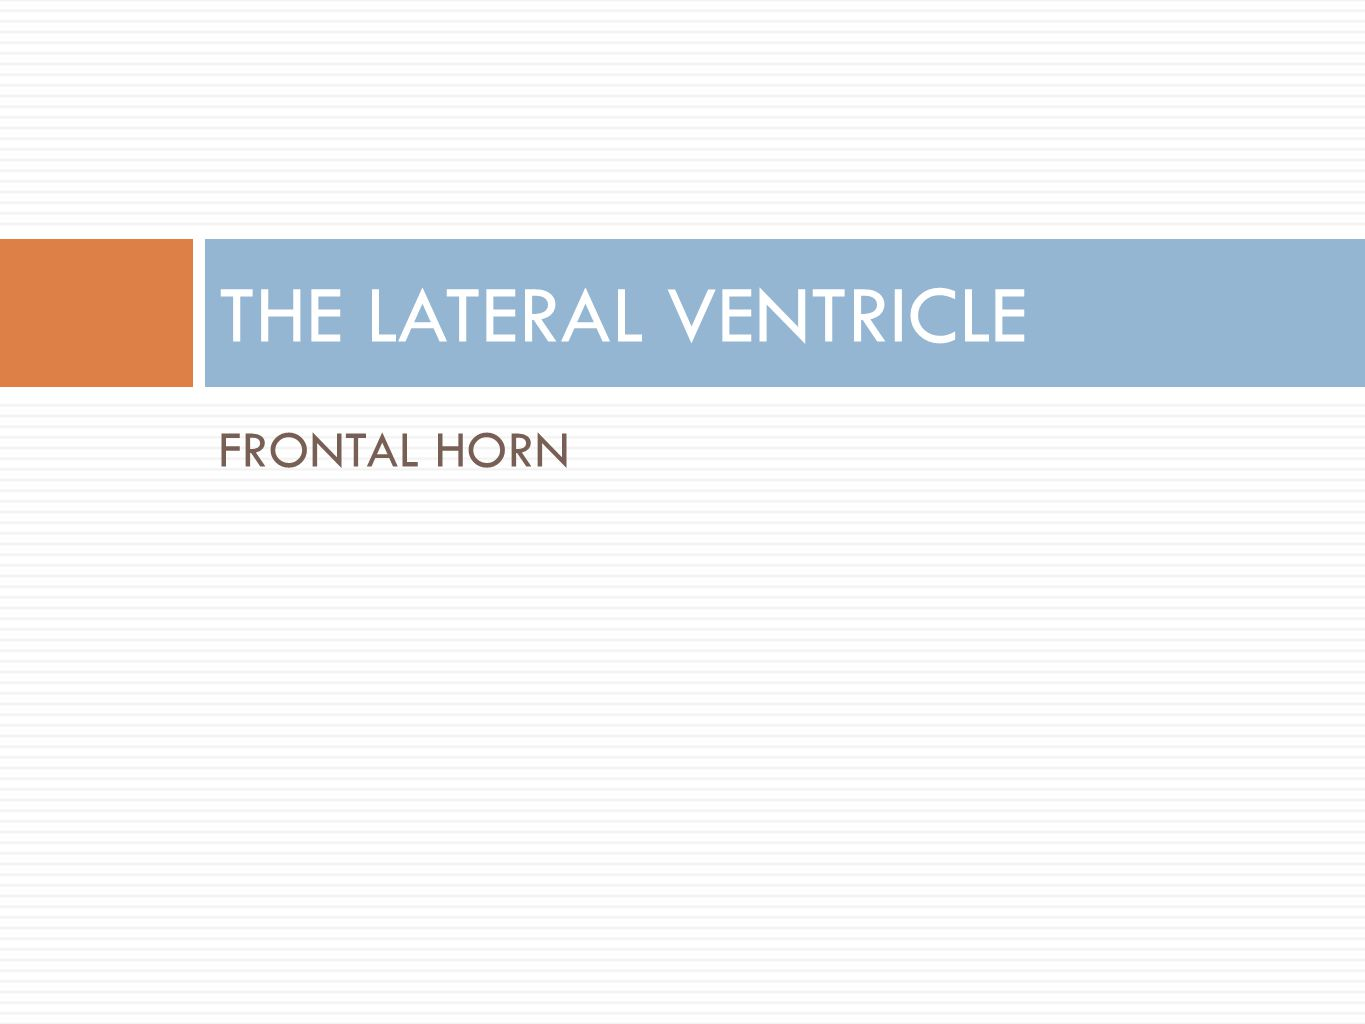 THE LATERAL VENTRICLE FRONTAL HORN